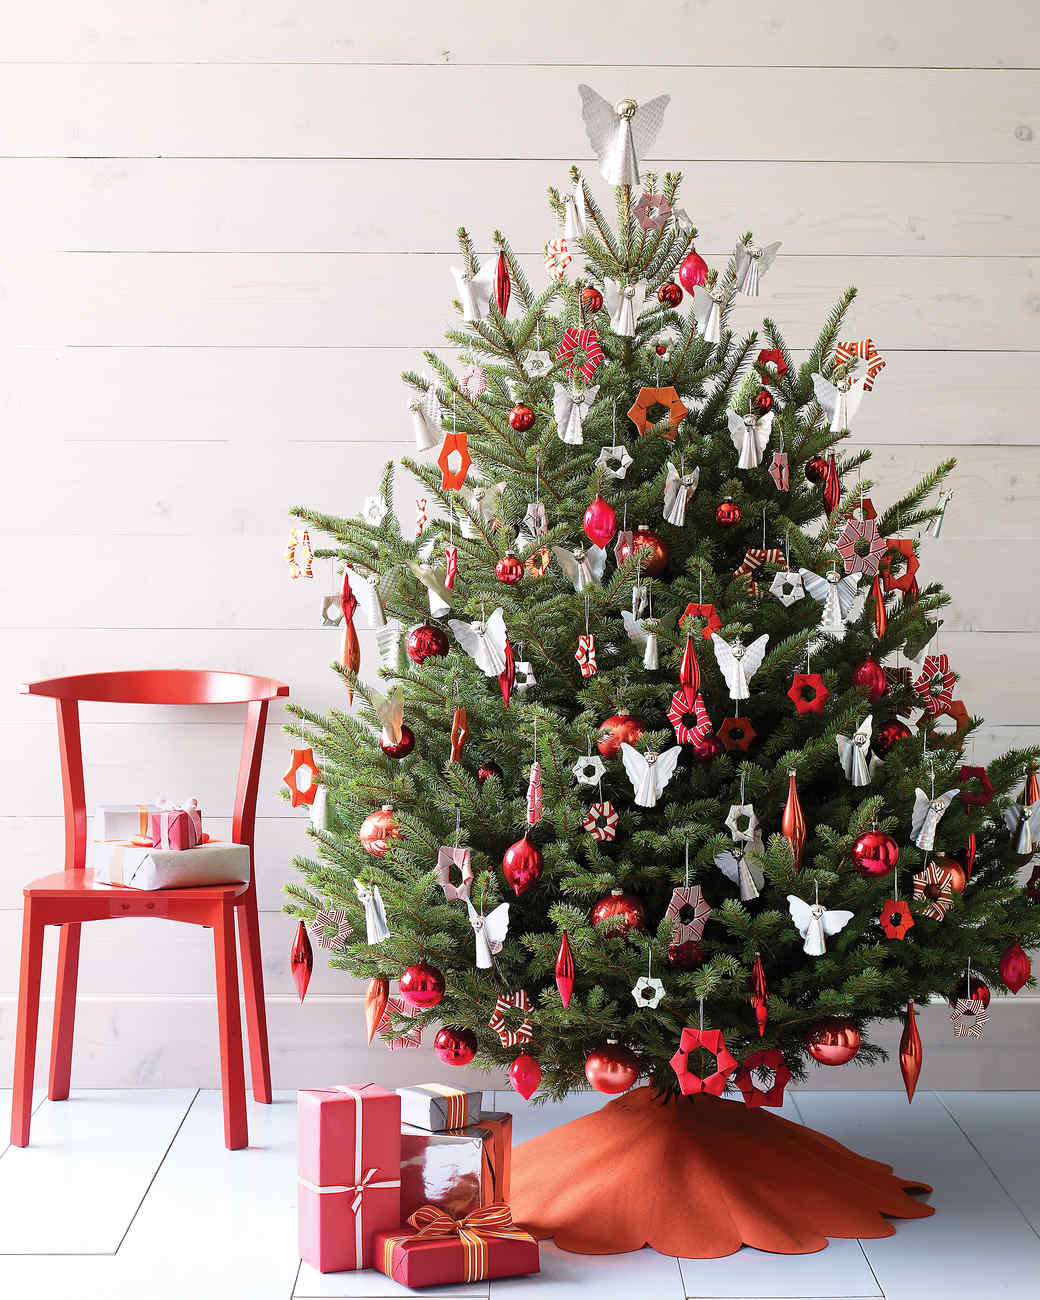 Little Decor Ideas To Make At Home: Christmas Tree Decorating Ideas